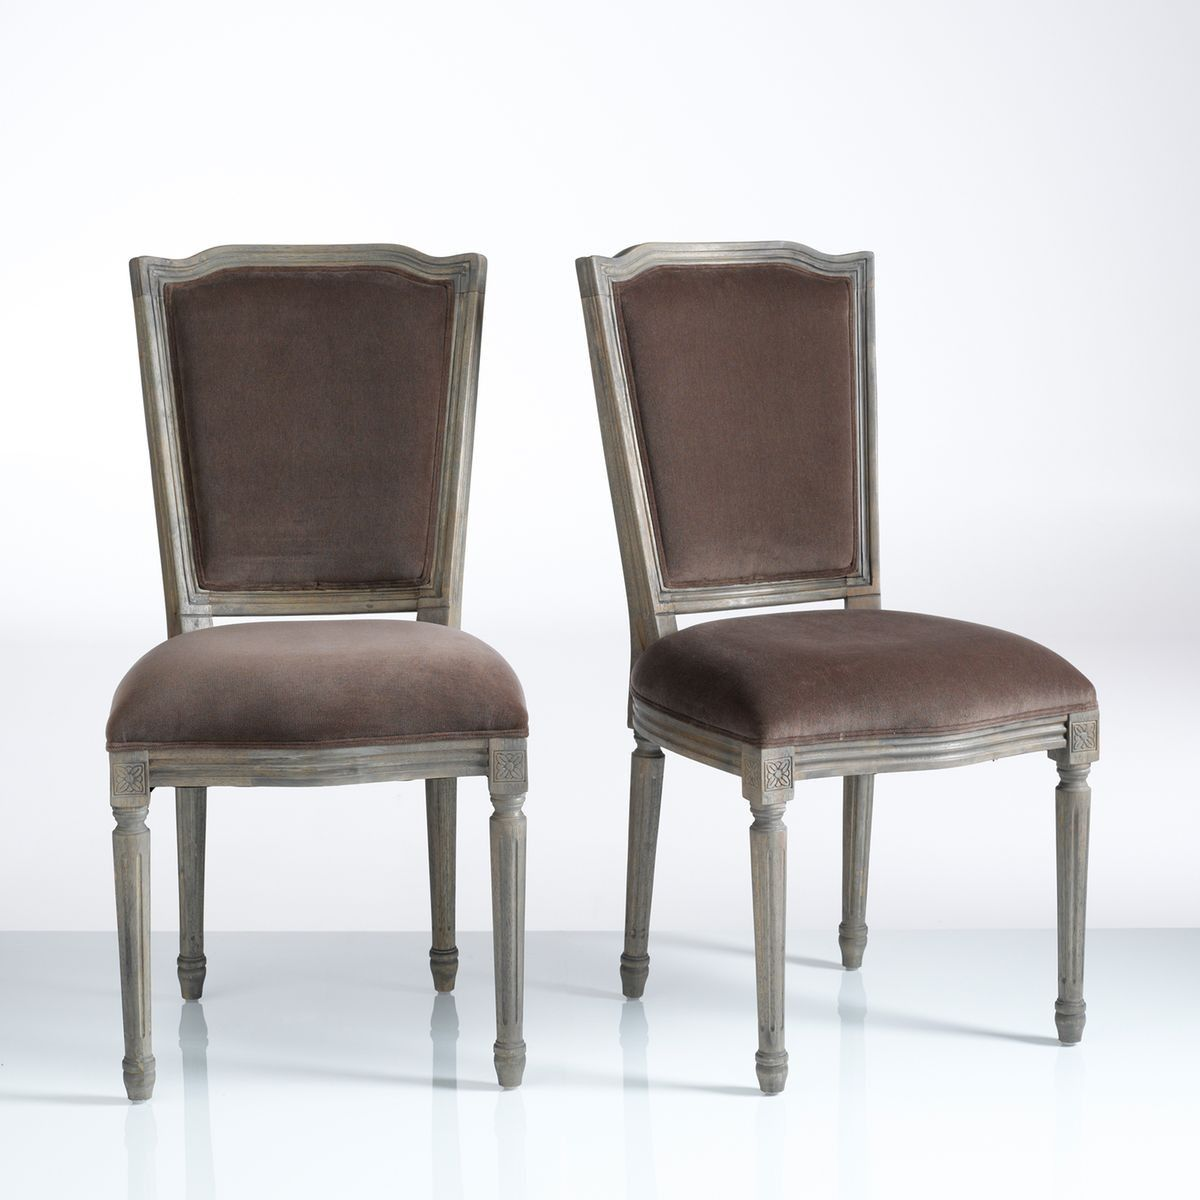 Chaise Style Louis Xvi Lot De 2 Trianon Products Chaise